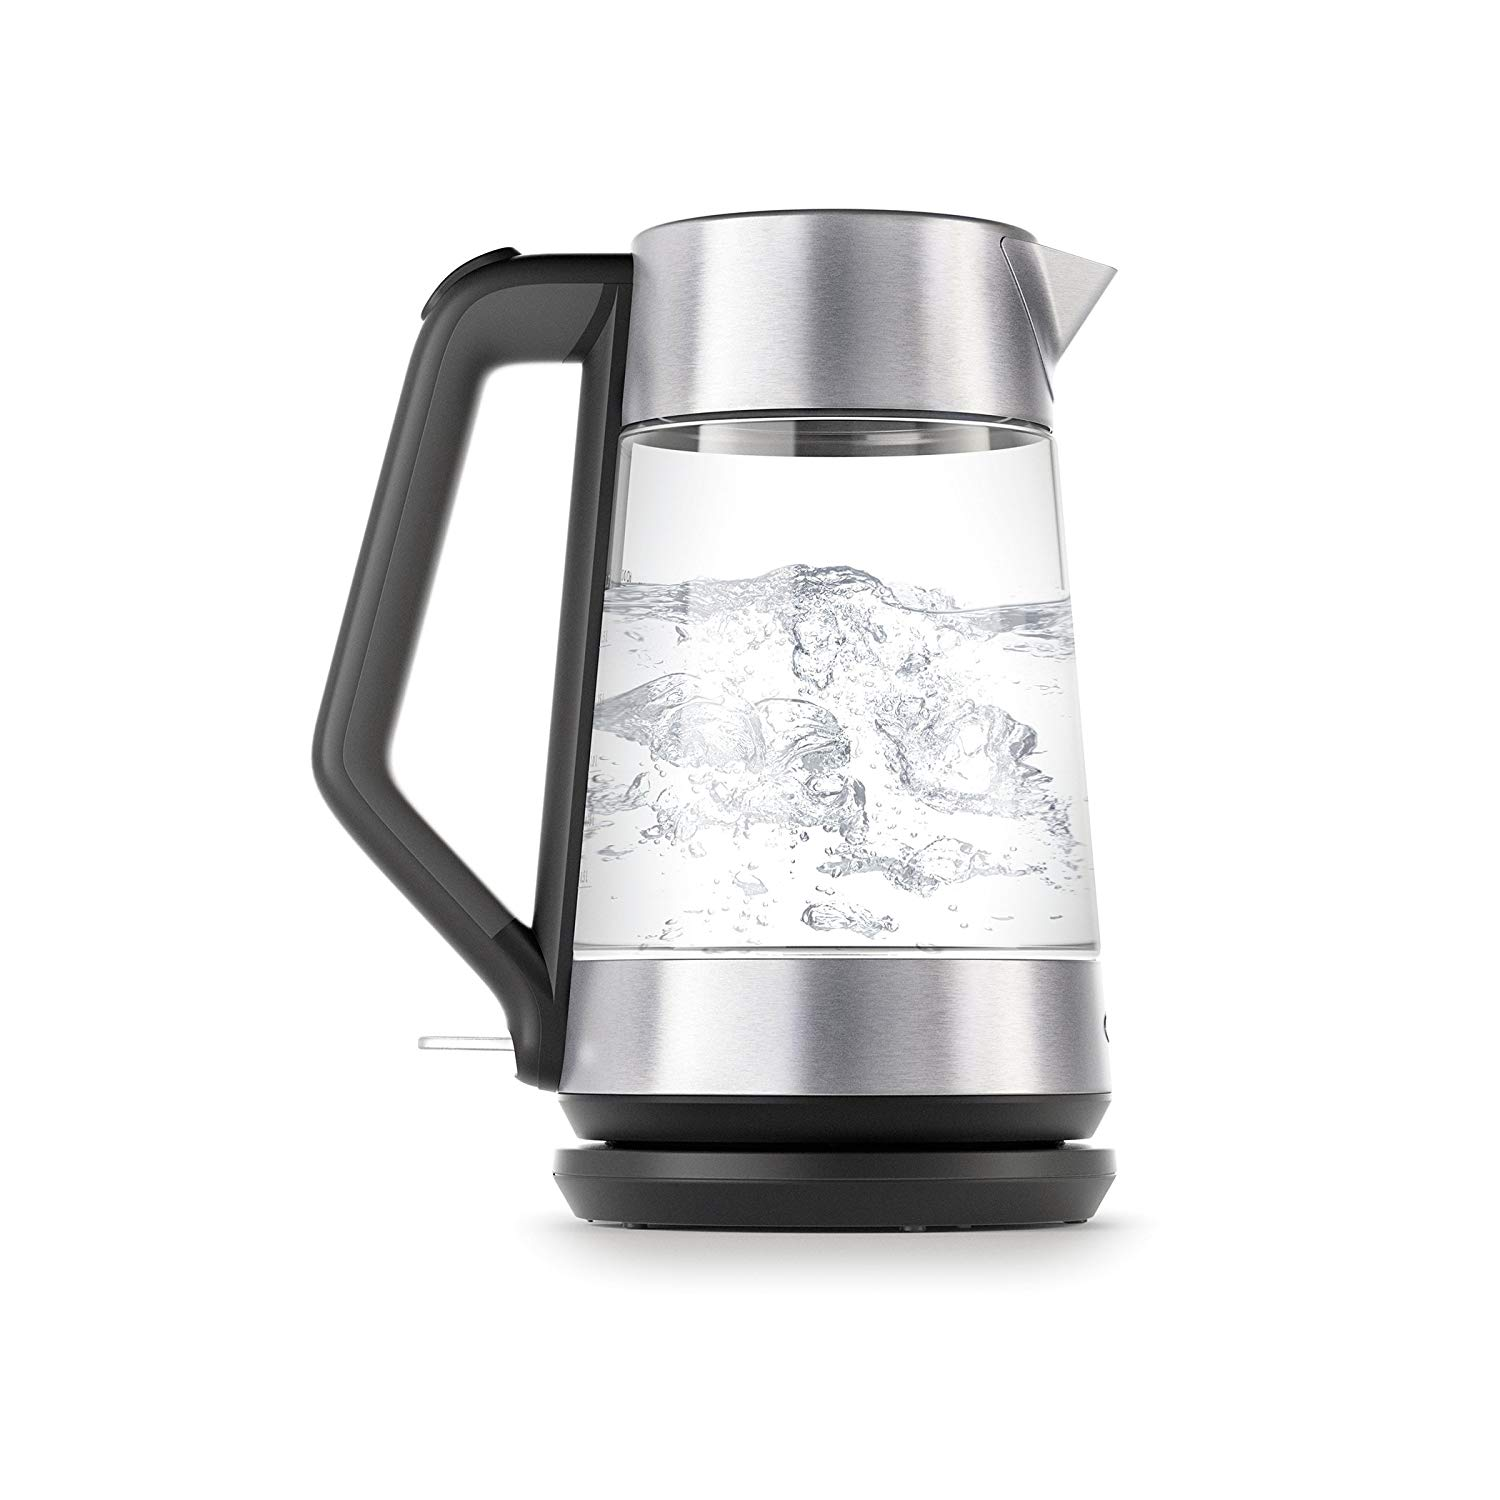 Oxo 1.75 liter glass electric kettle